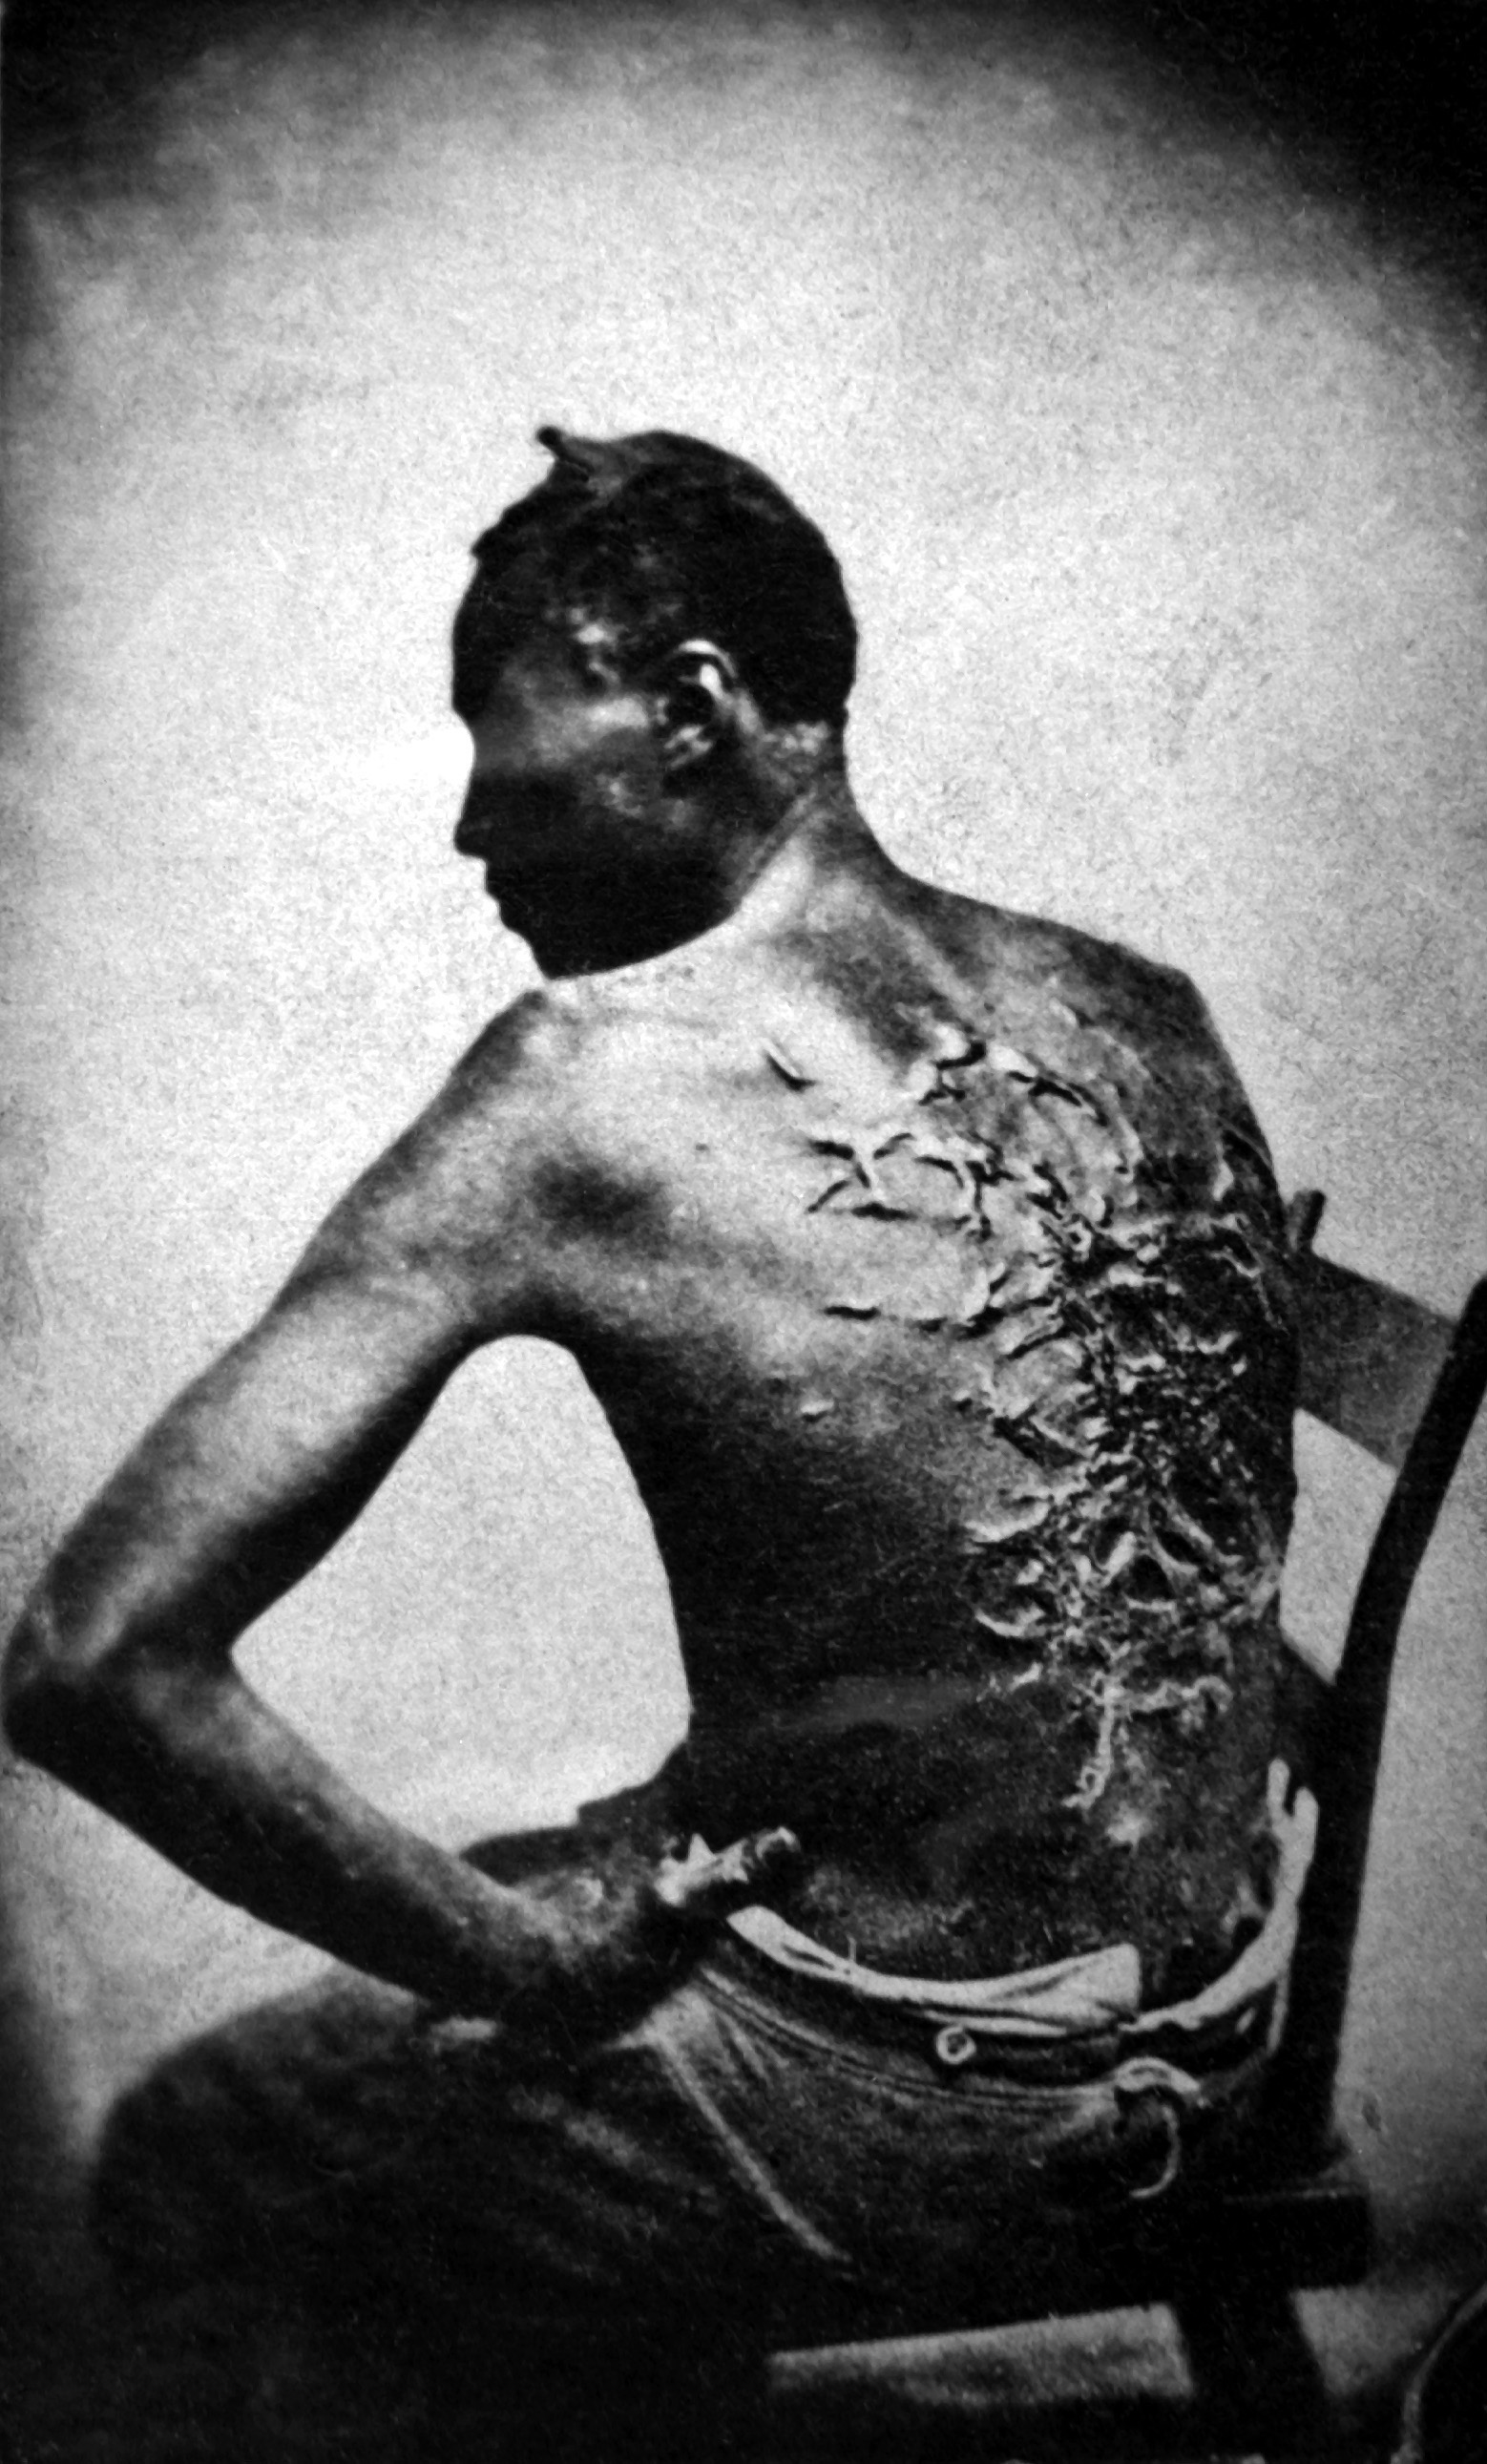 treatment of slaves in the united states treatment of slaves in the united states